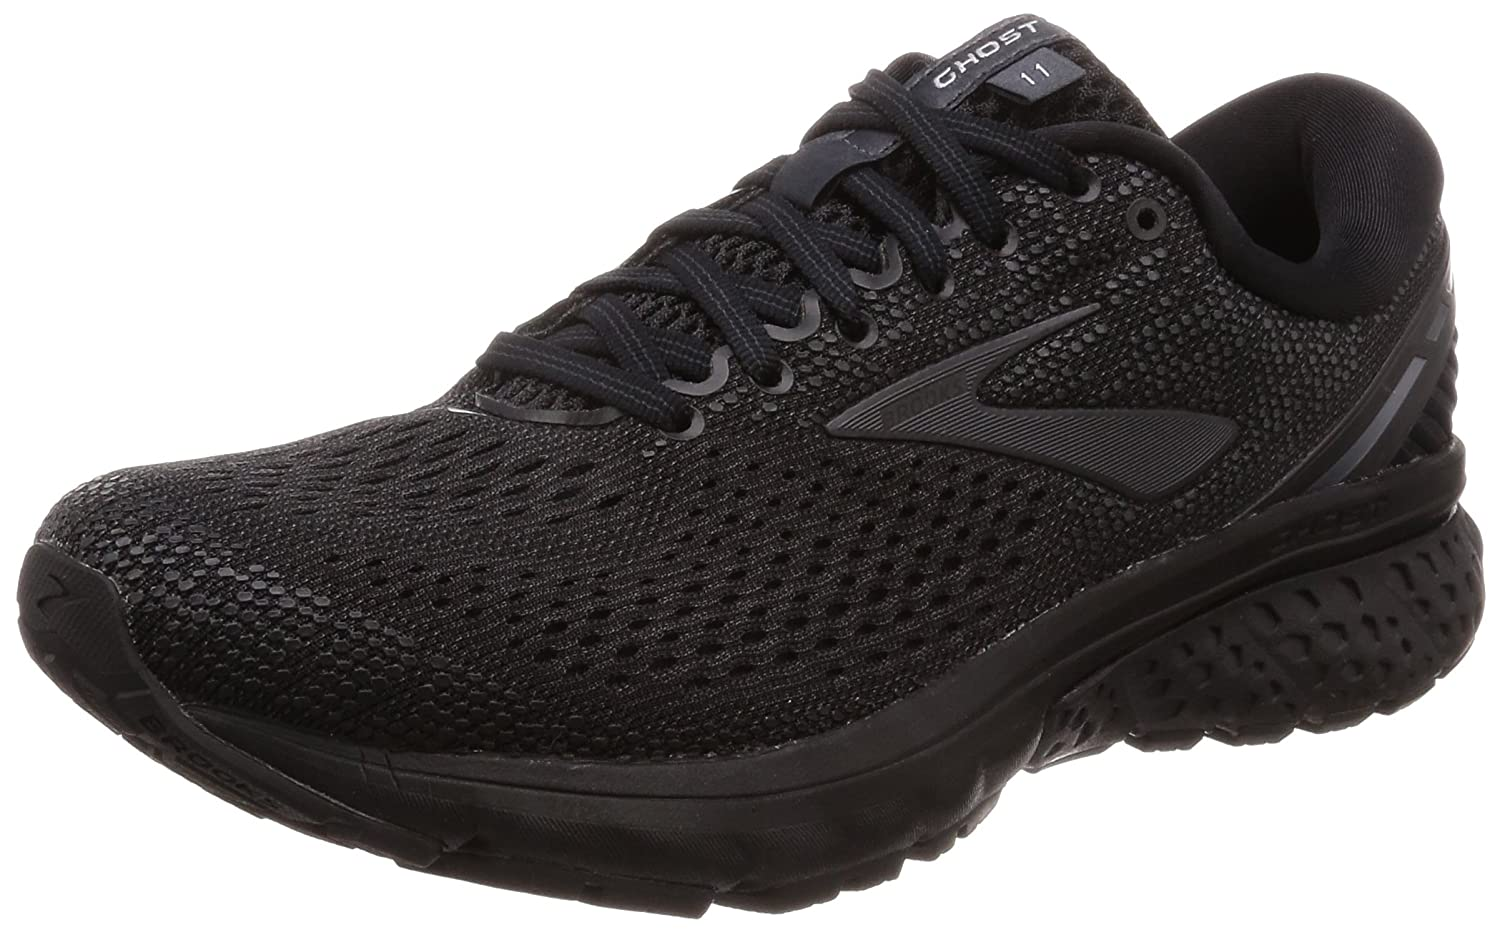 Brooks Womens Ghost 11 Running Shoe B077QSH8HD 8 B(M) US|Black/Ebony